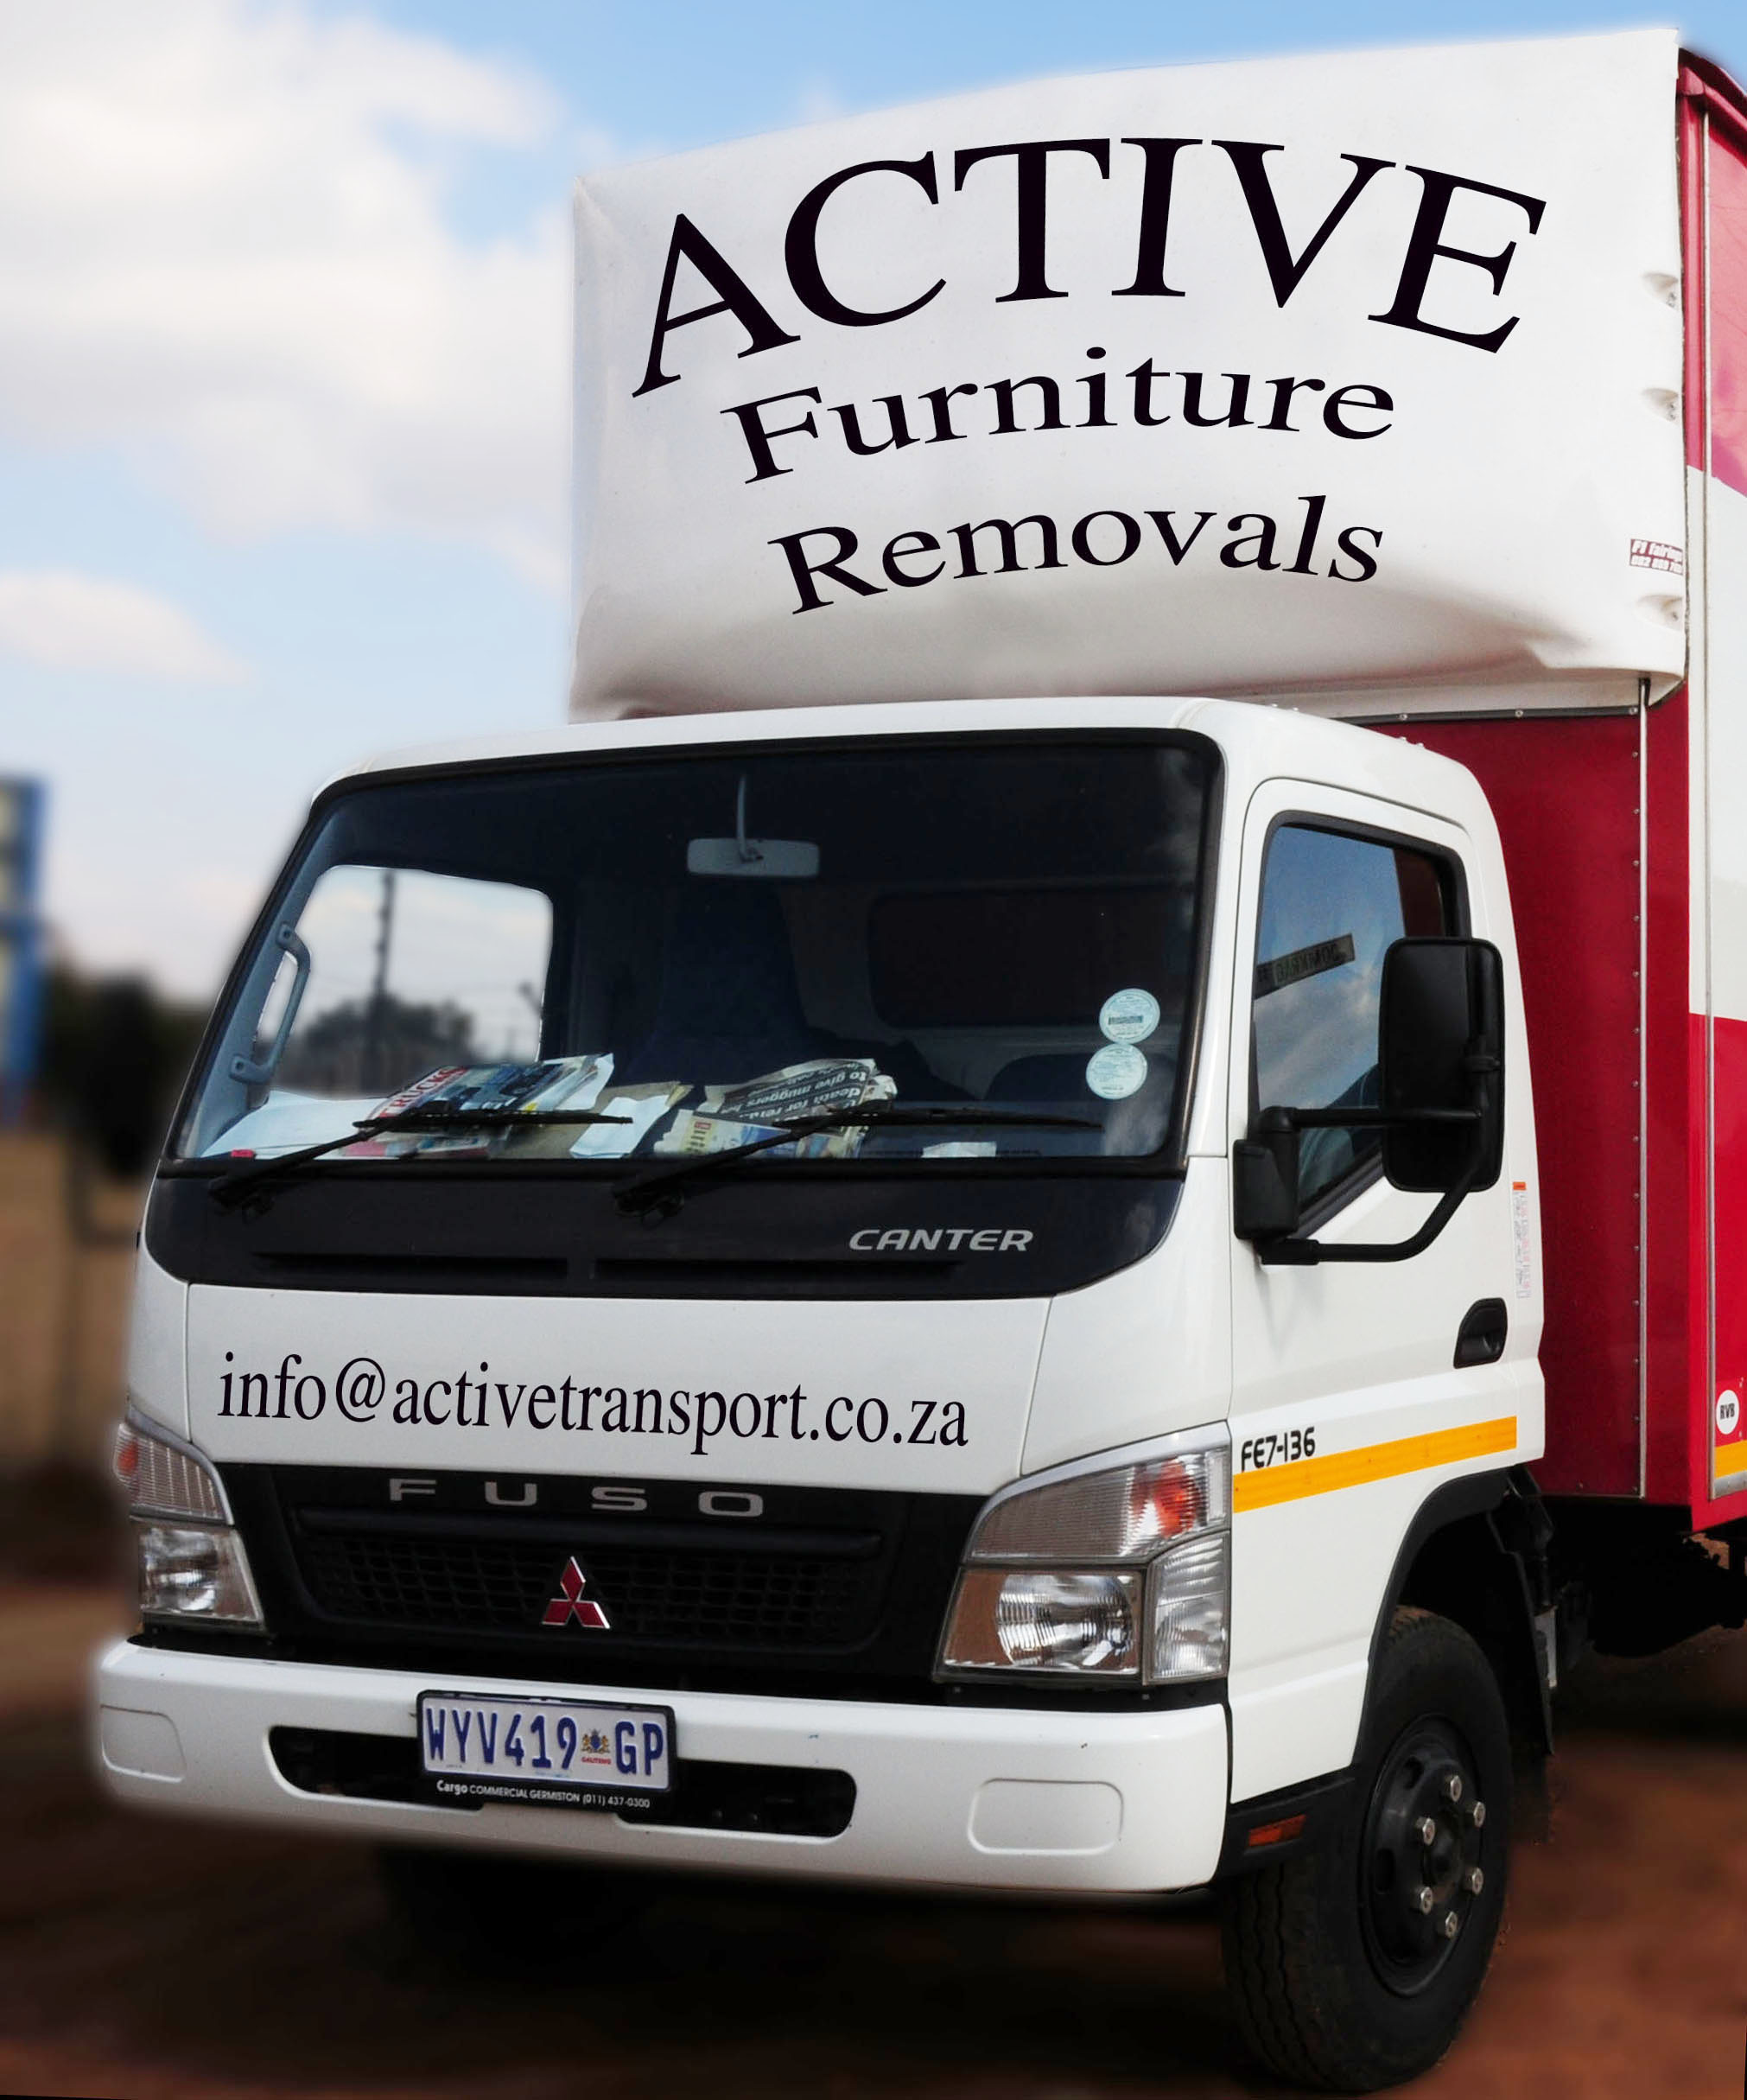 Active Furniture Removals Furniture Removals Moving Services Transportation And Logistics In Waltloo Pretoria Gauteng Active Furniture Removals The Best Free Online Business Directory South Africa